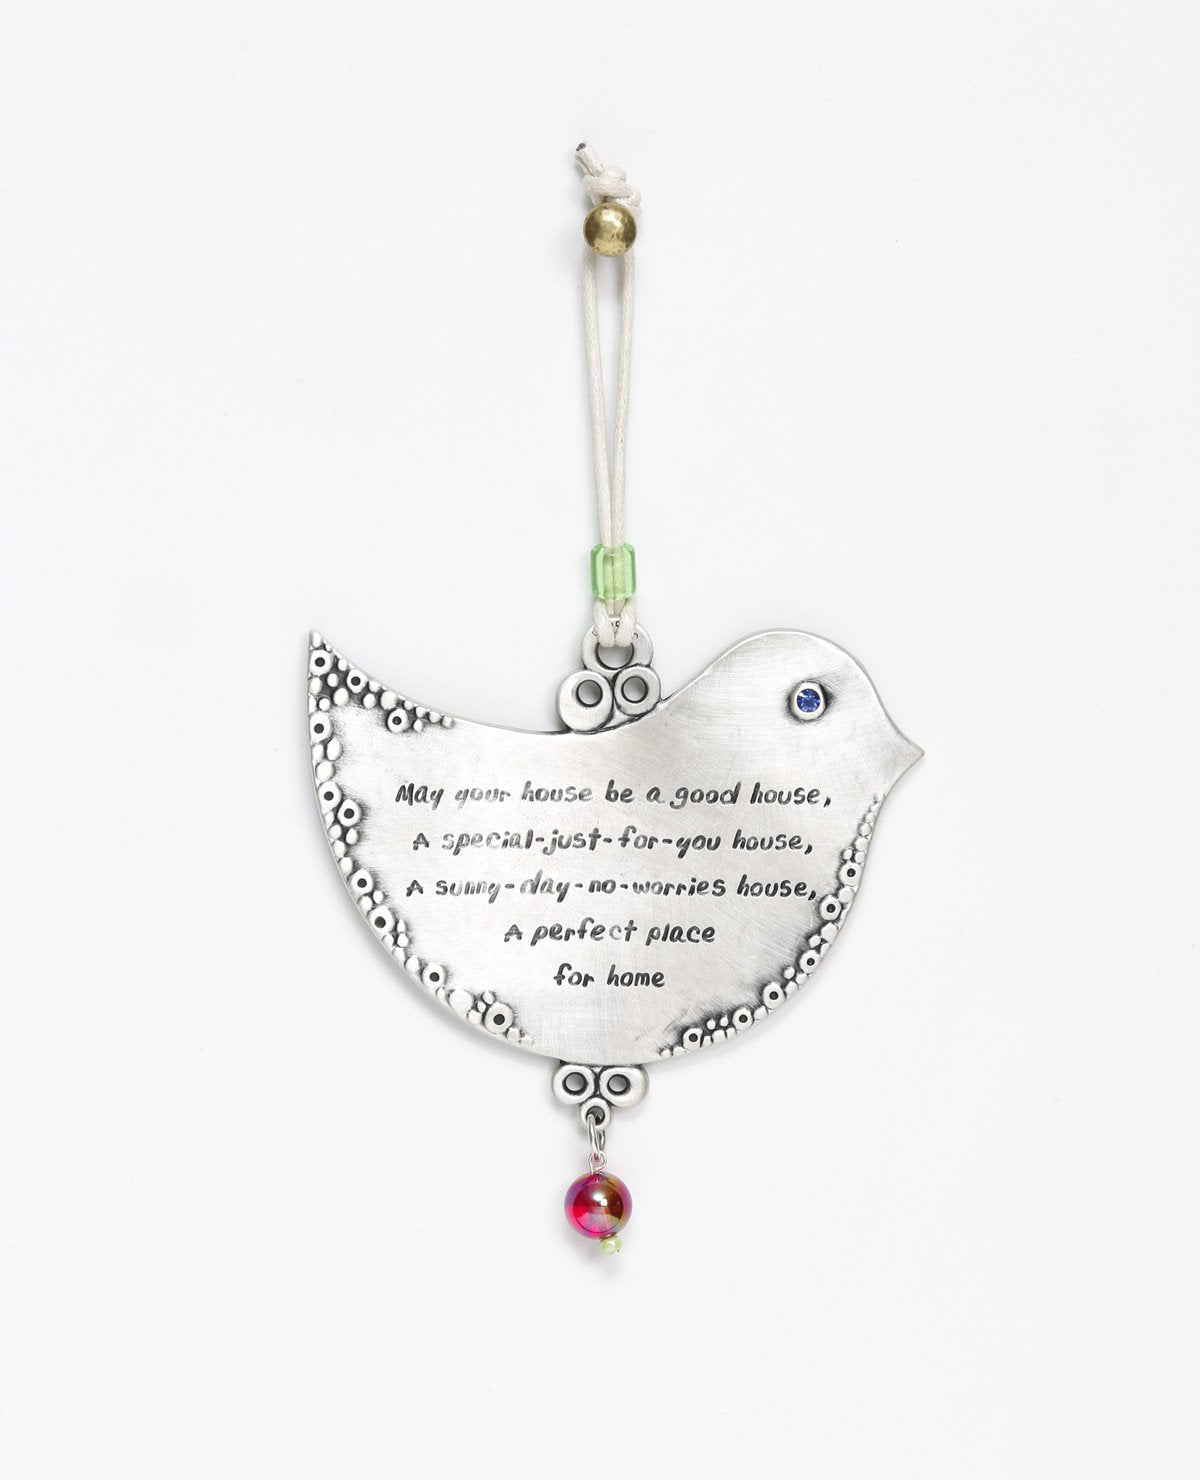 A hanging Home Blessing ornament shaped like a dove, with a special blessing for the home engraved on it in both Hebrew and English. The words are authentic and full of inspiration, calling for prosperity, love and wishes coming true. The ornament is coated in sterling silver, inlaid with a Swarovski crystal and comes with a faux leather string decorated with colorful beads. This original decorative piece makes an inspirational gift for the home, for new journeys and people that are loved.  Comes also in yo